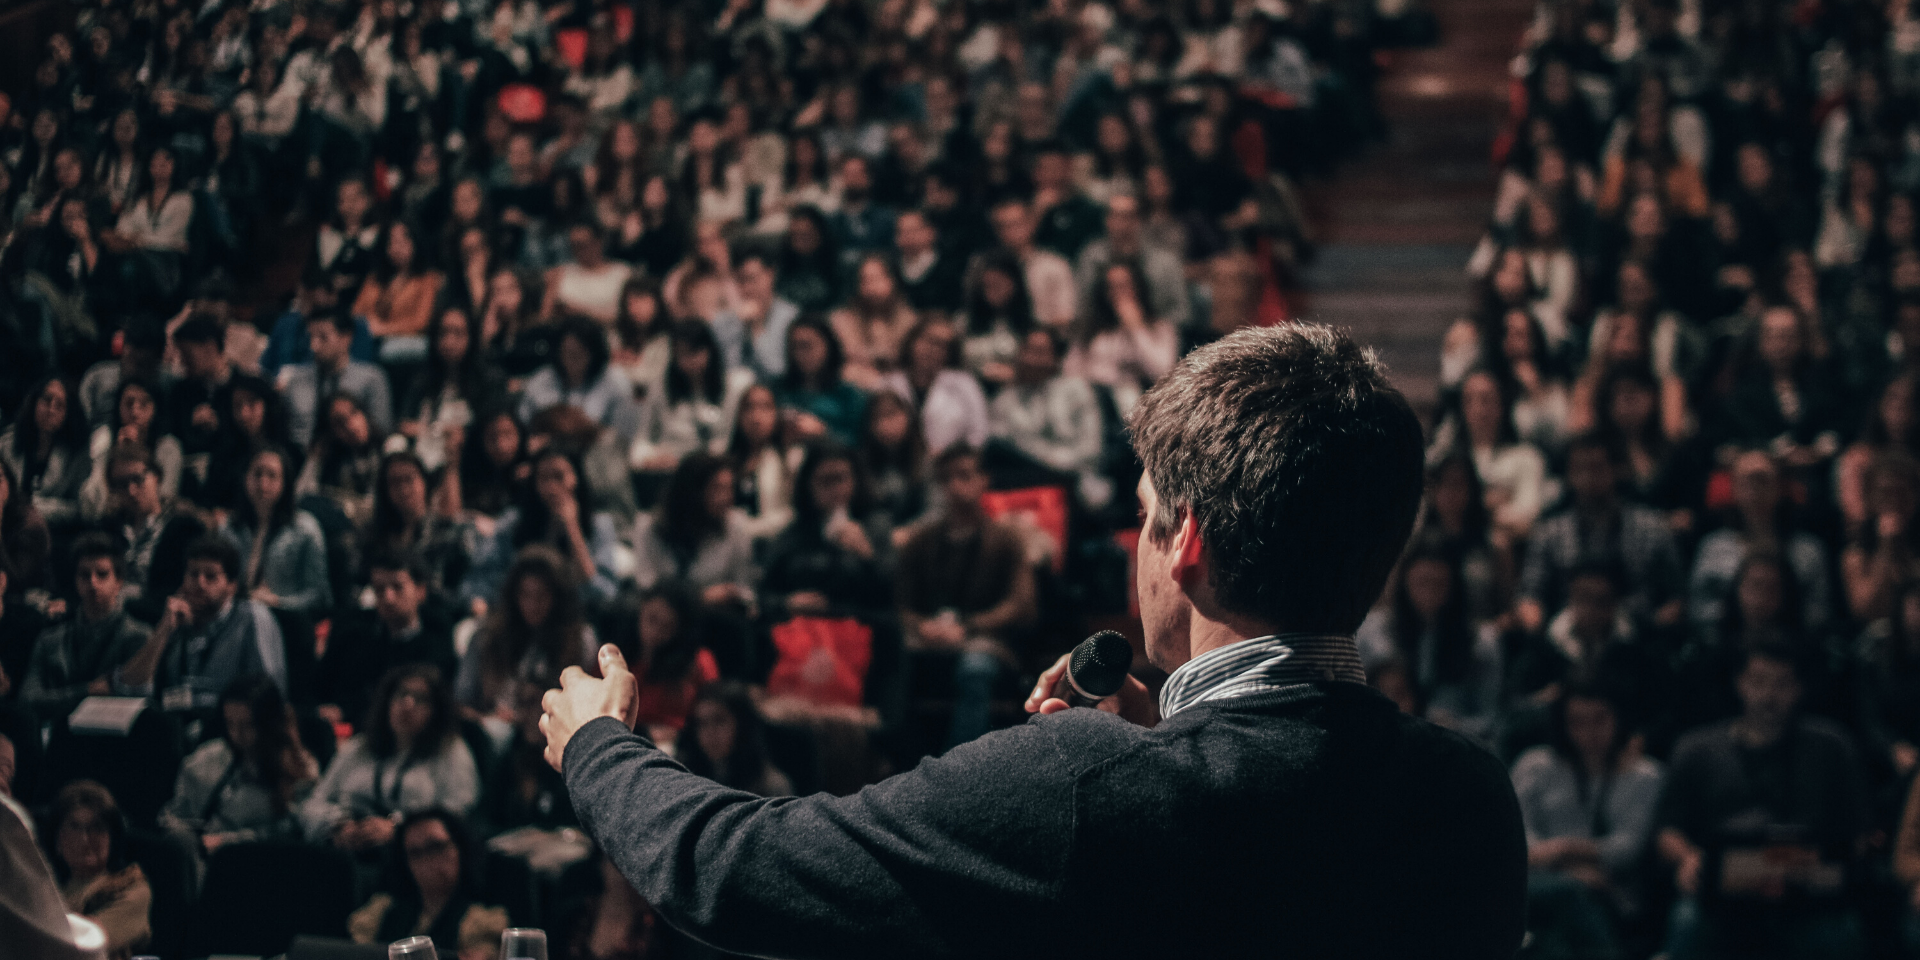 Top open banking & fintech events in 2020